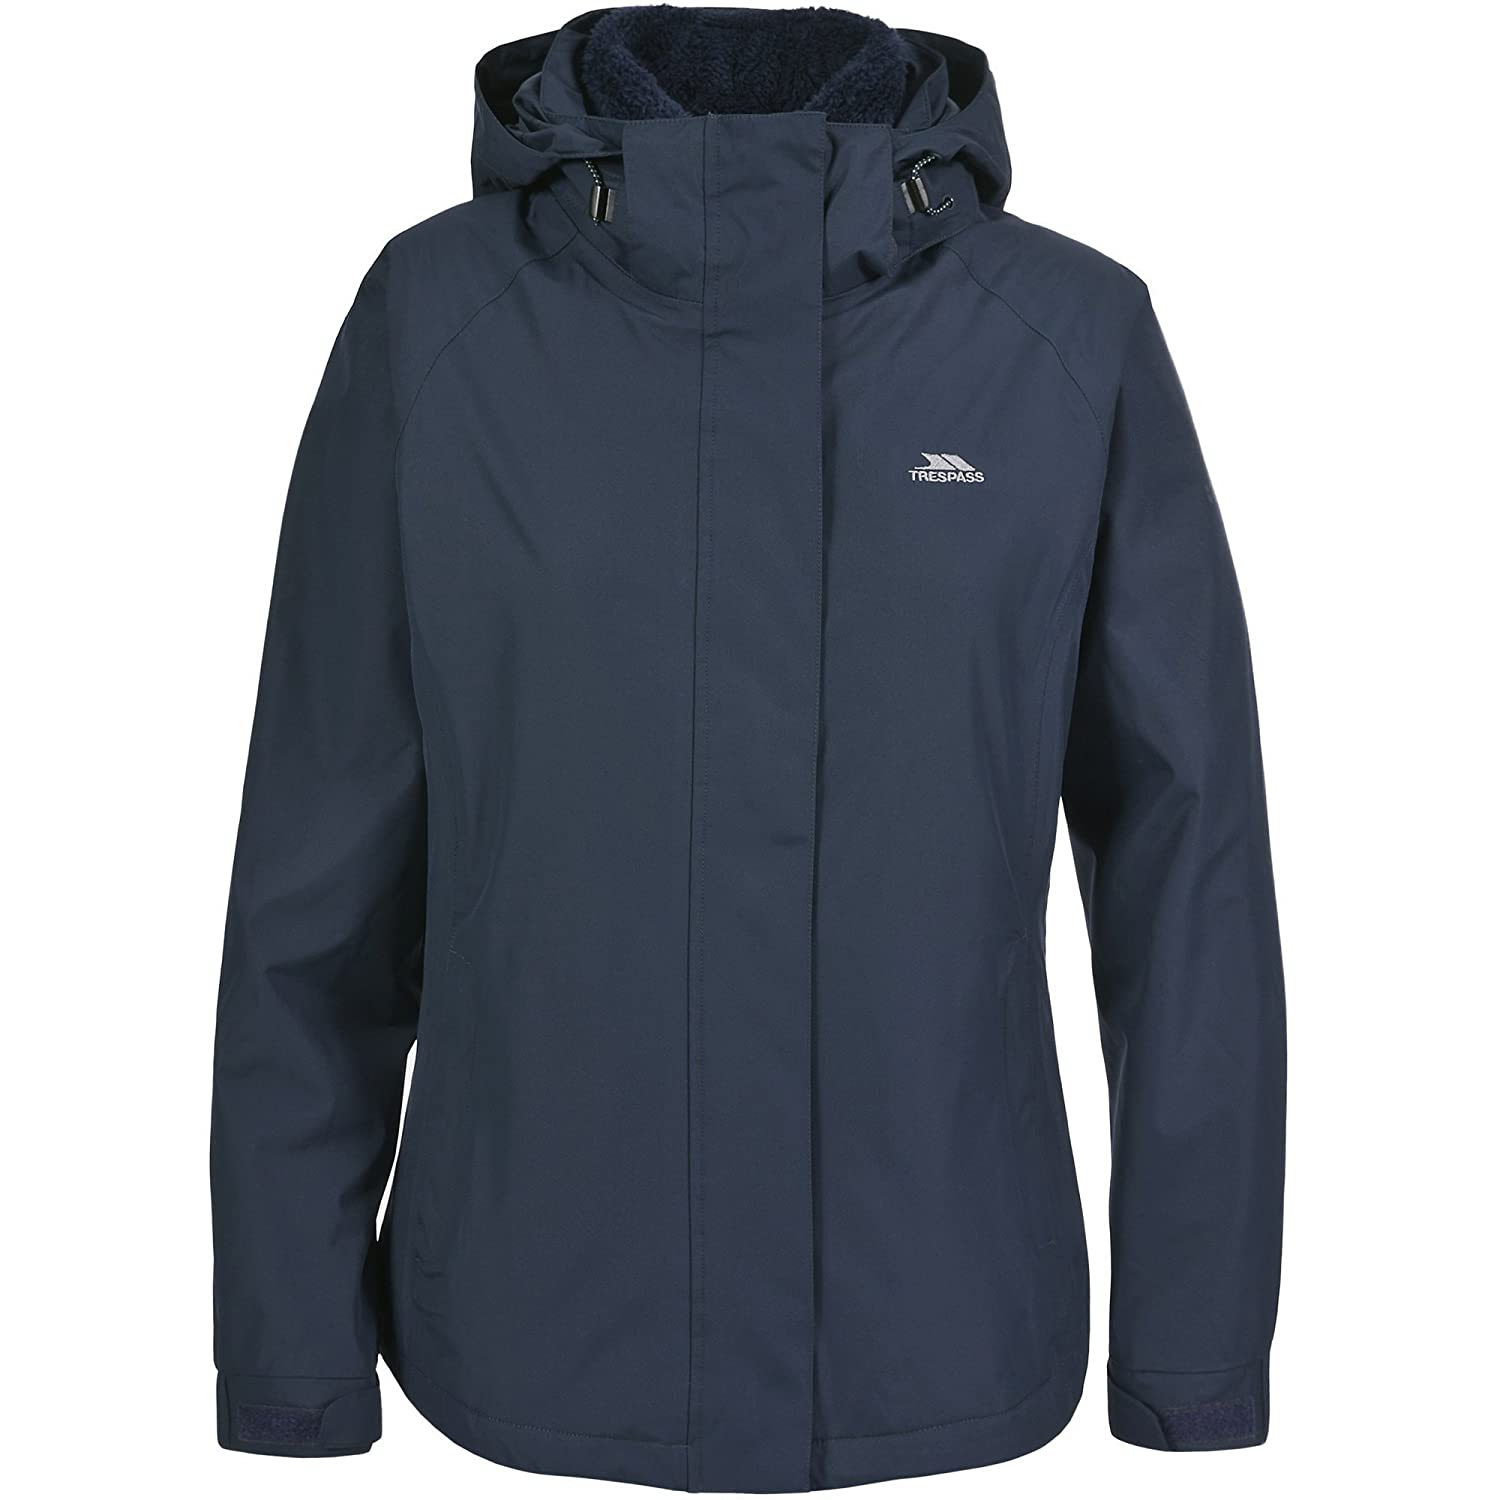 Trespass Womens/Ladies Trillium 3 in 1 Waterproof Jacket